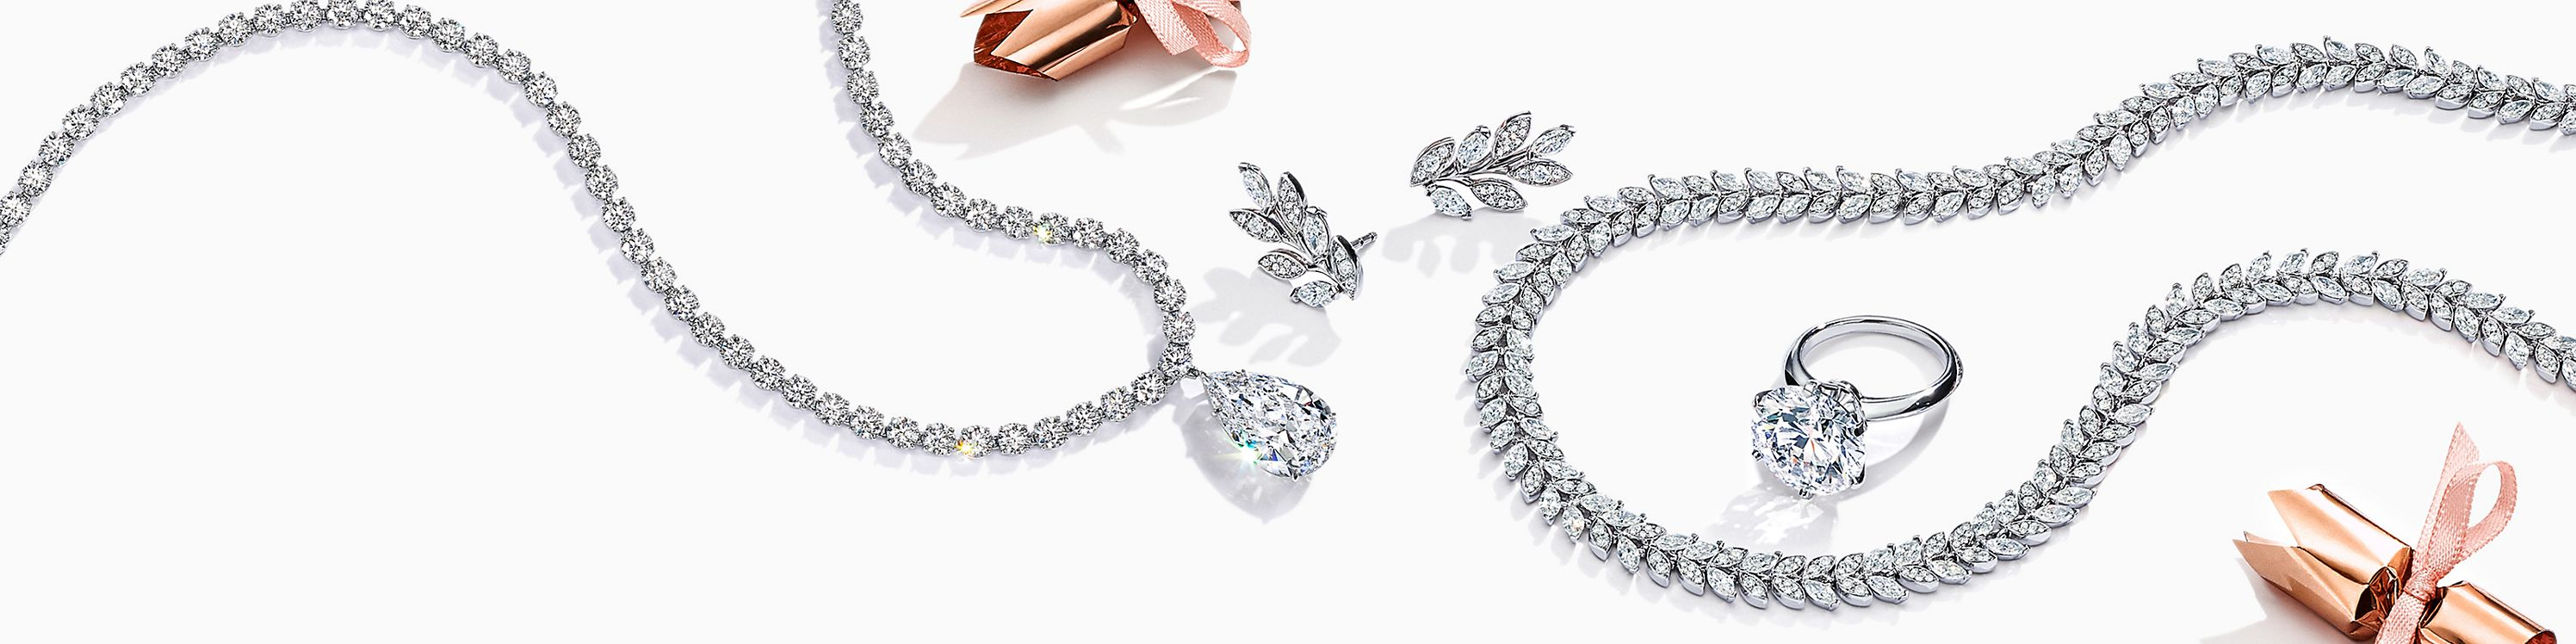 Tiffany & Co. Diamantschmuck